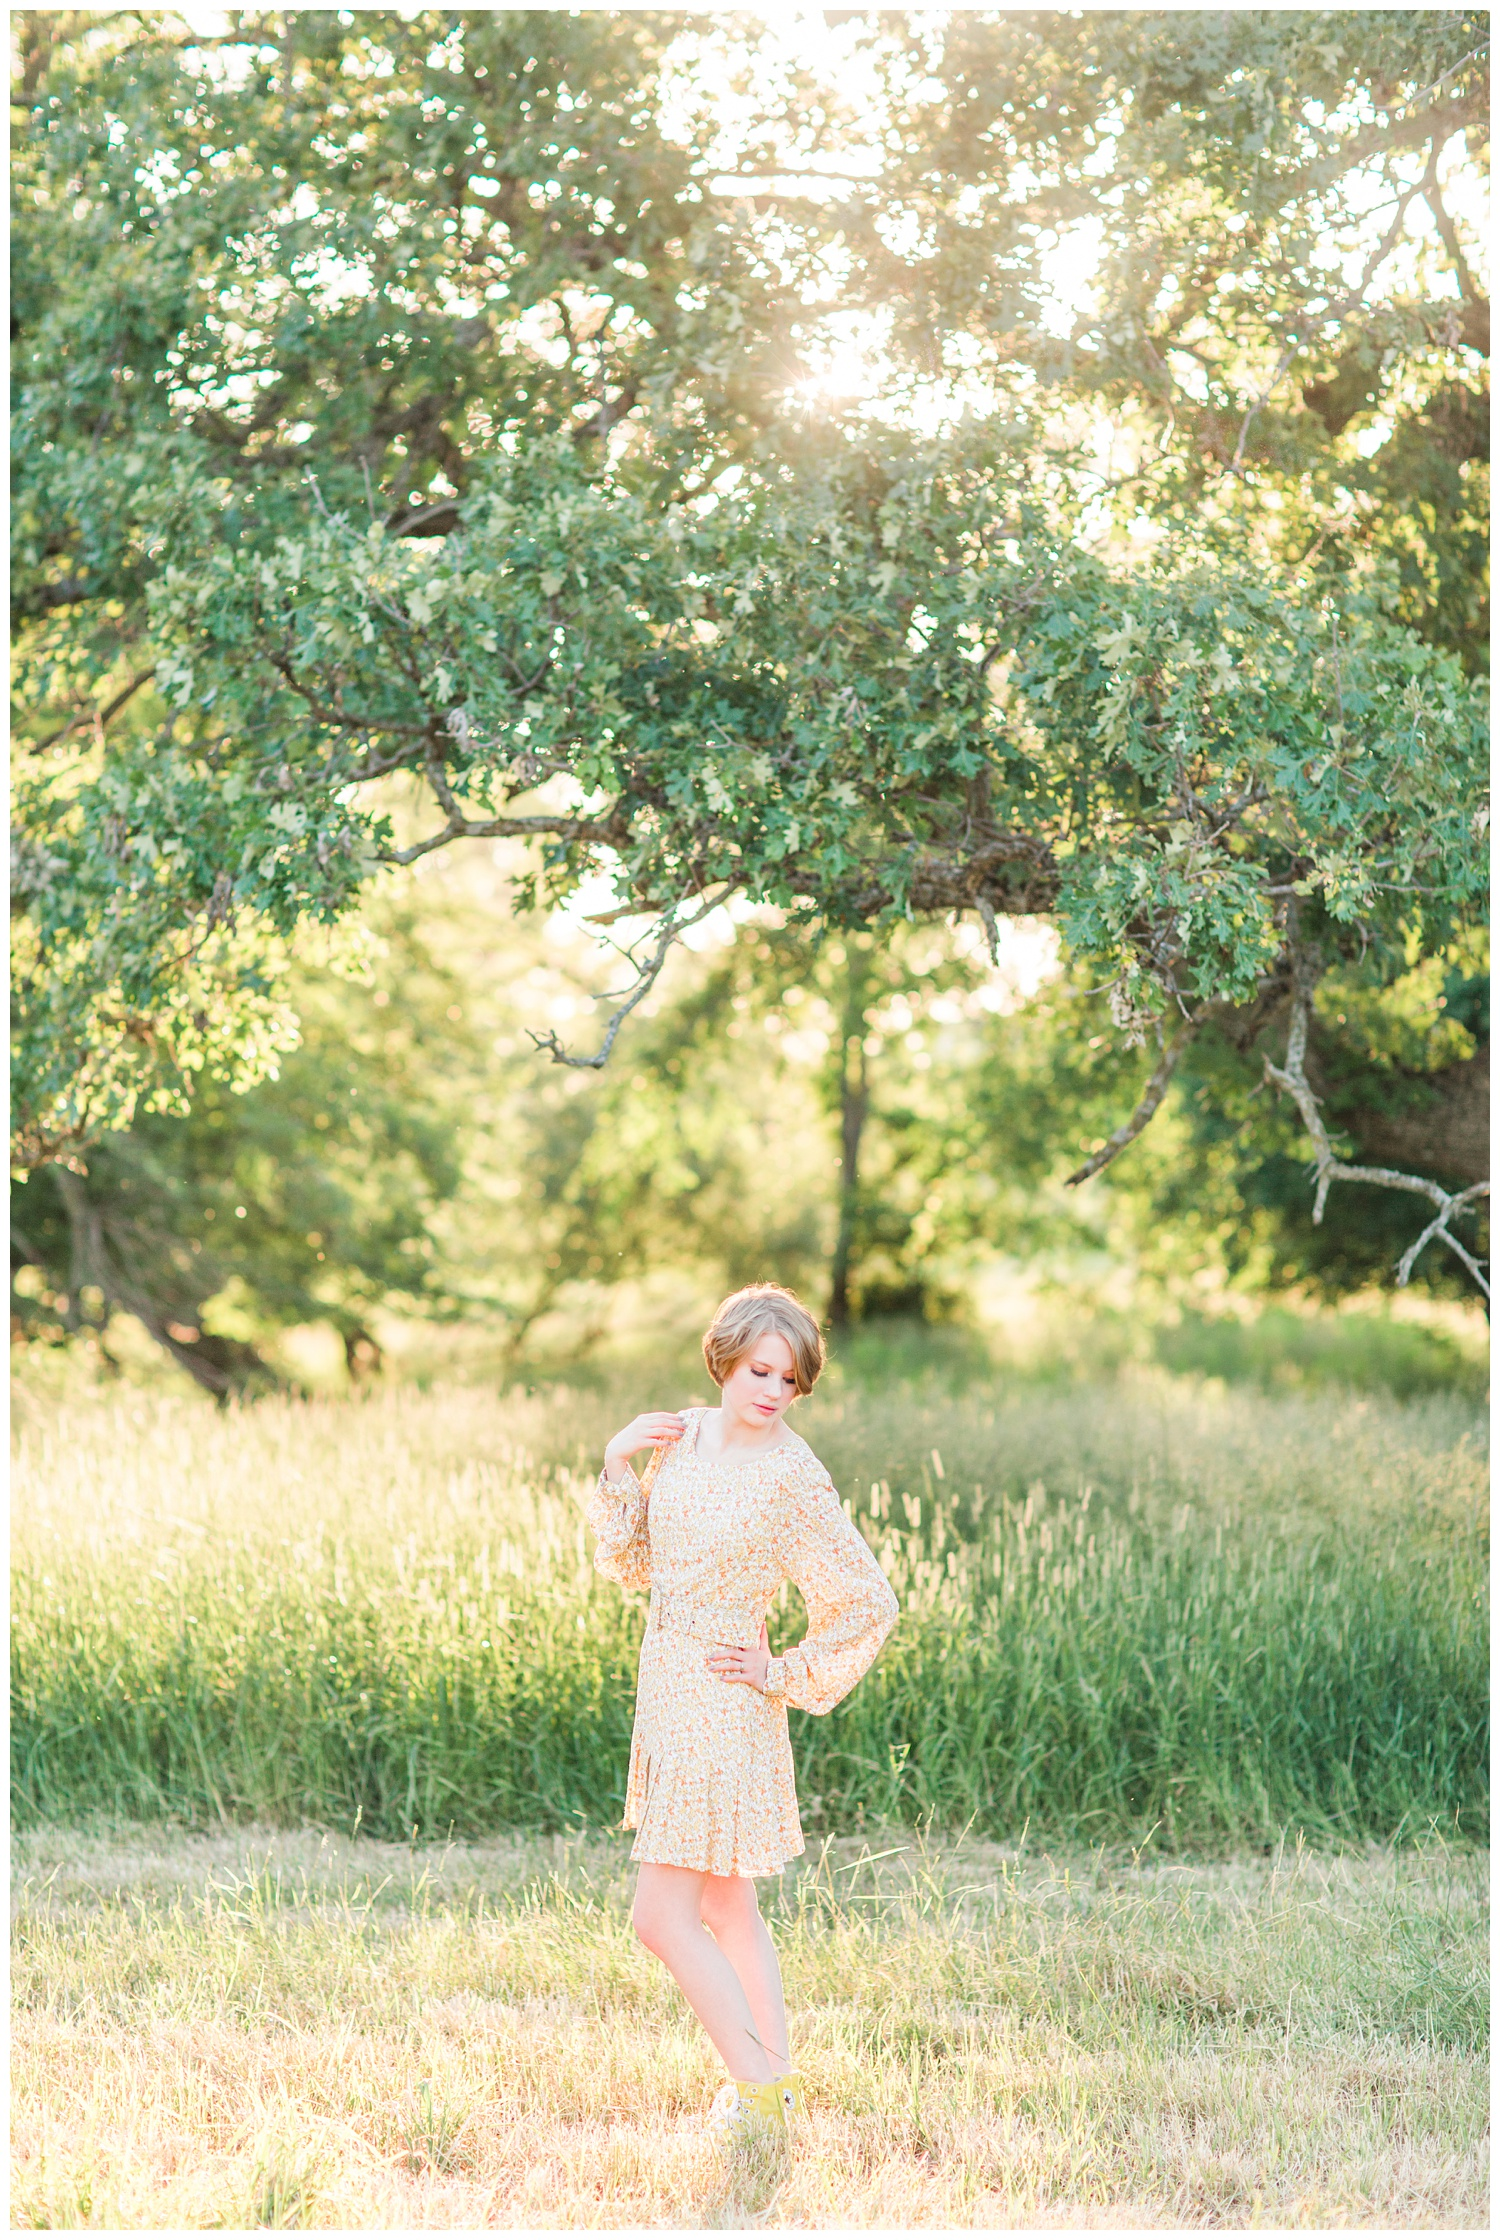 Vintage, film inspired, 70s retro styled senior photoshoot at golden hour in a grassy field. | CB Studio